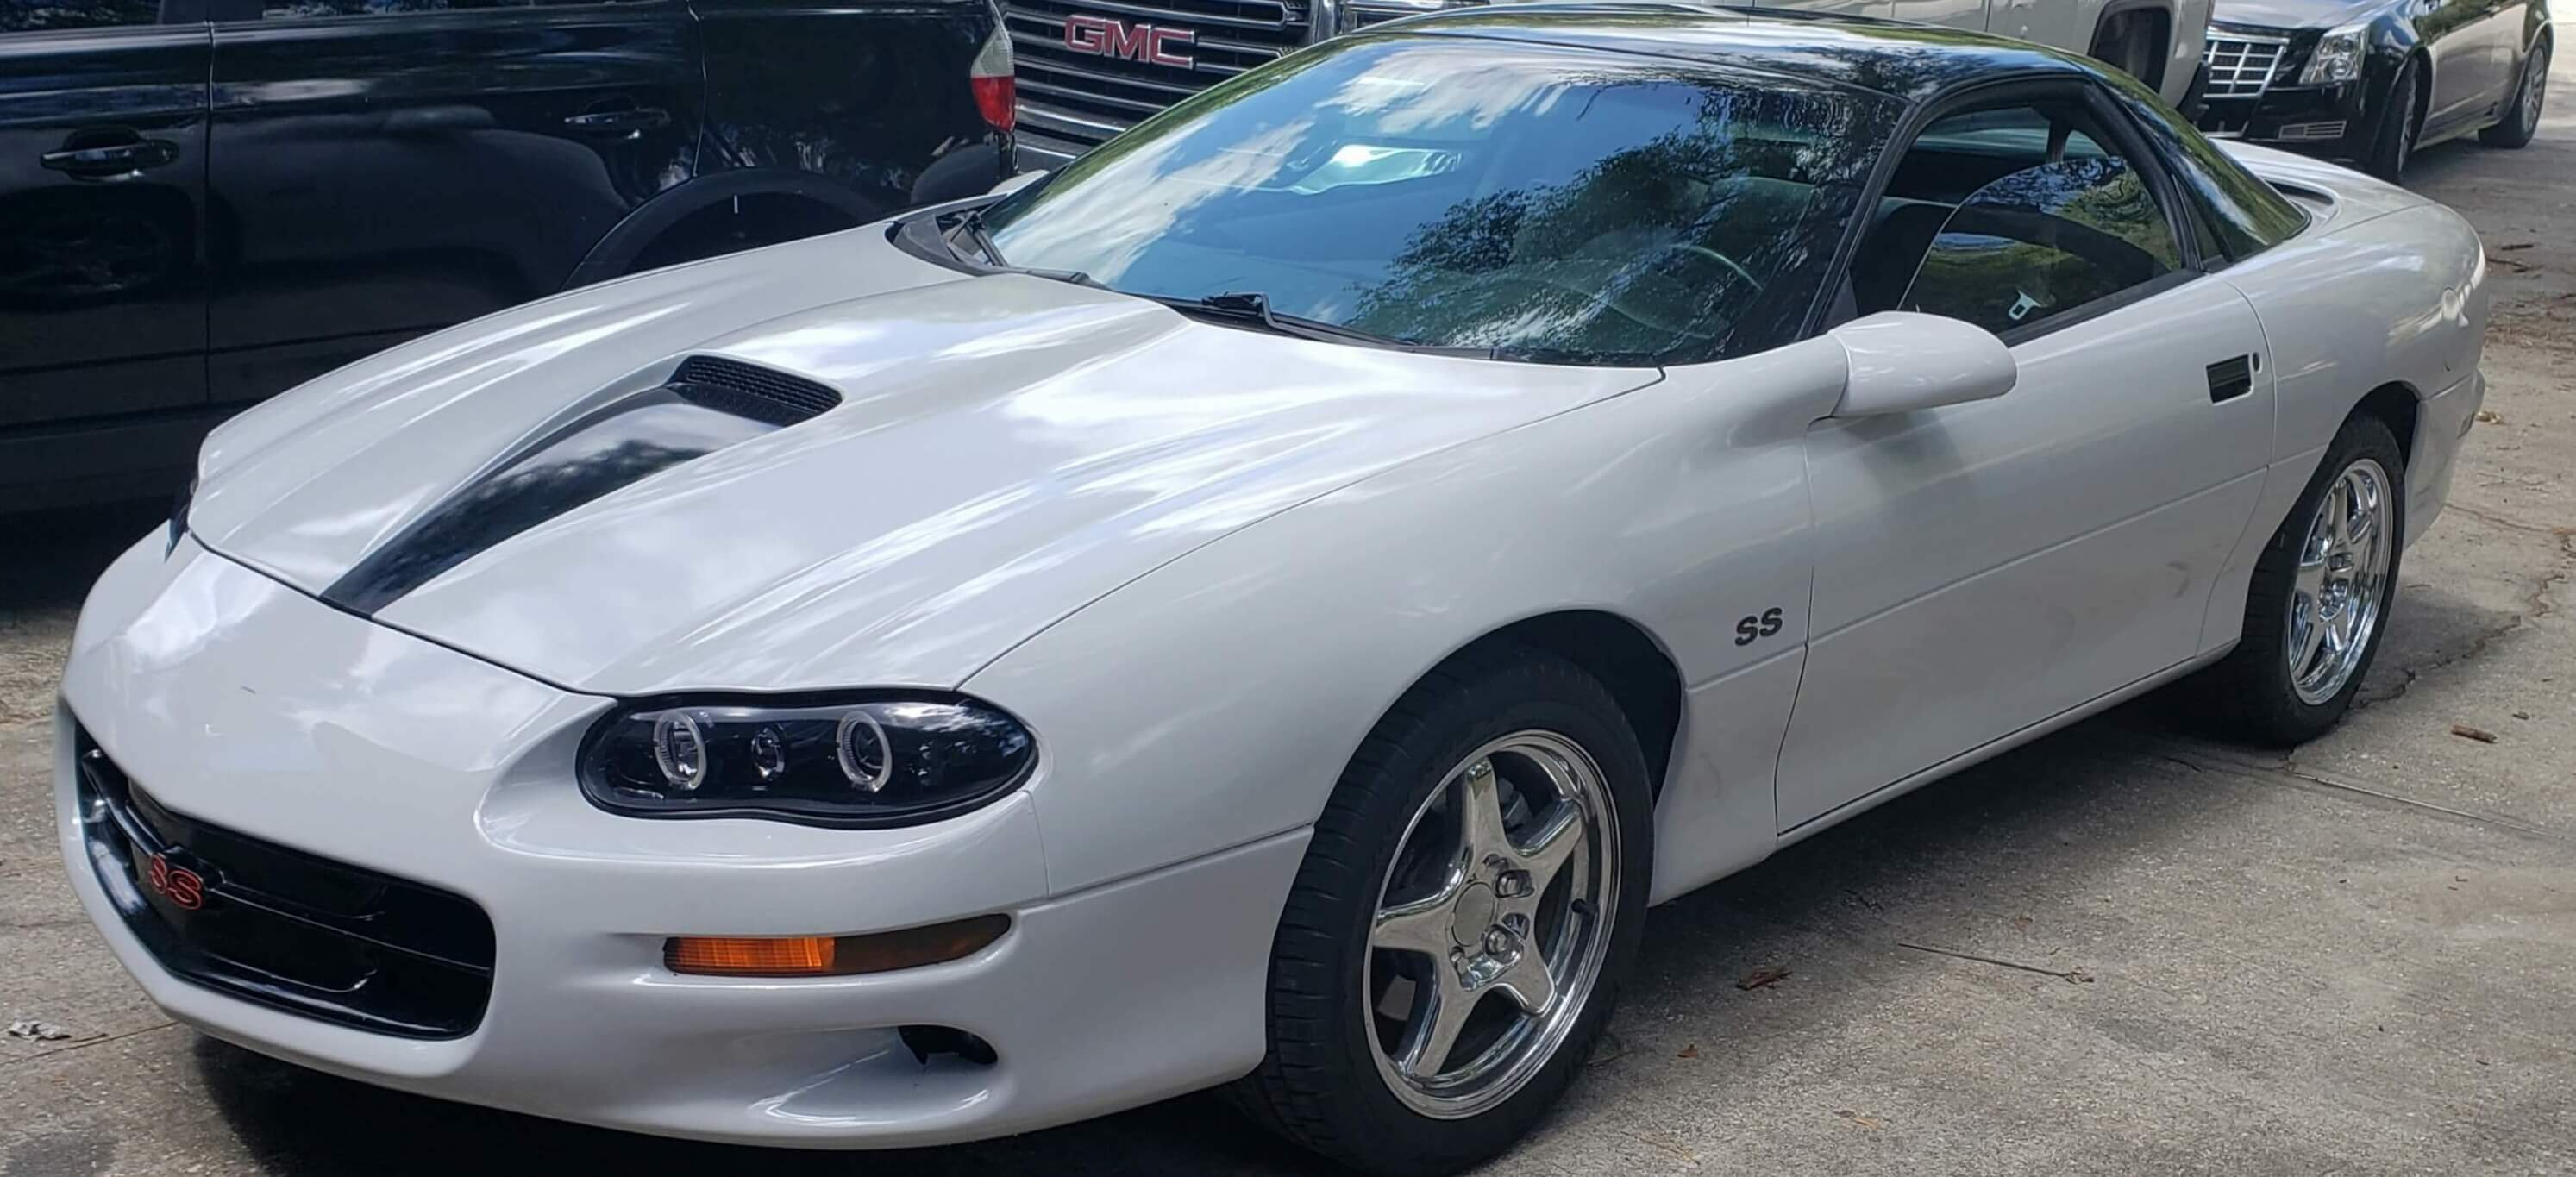 Get 2001 Chevrolet Camaro Engine 5.7L V8